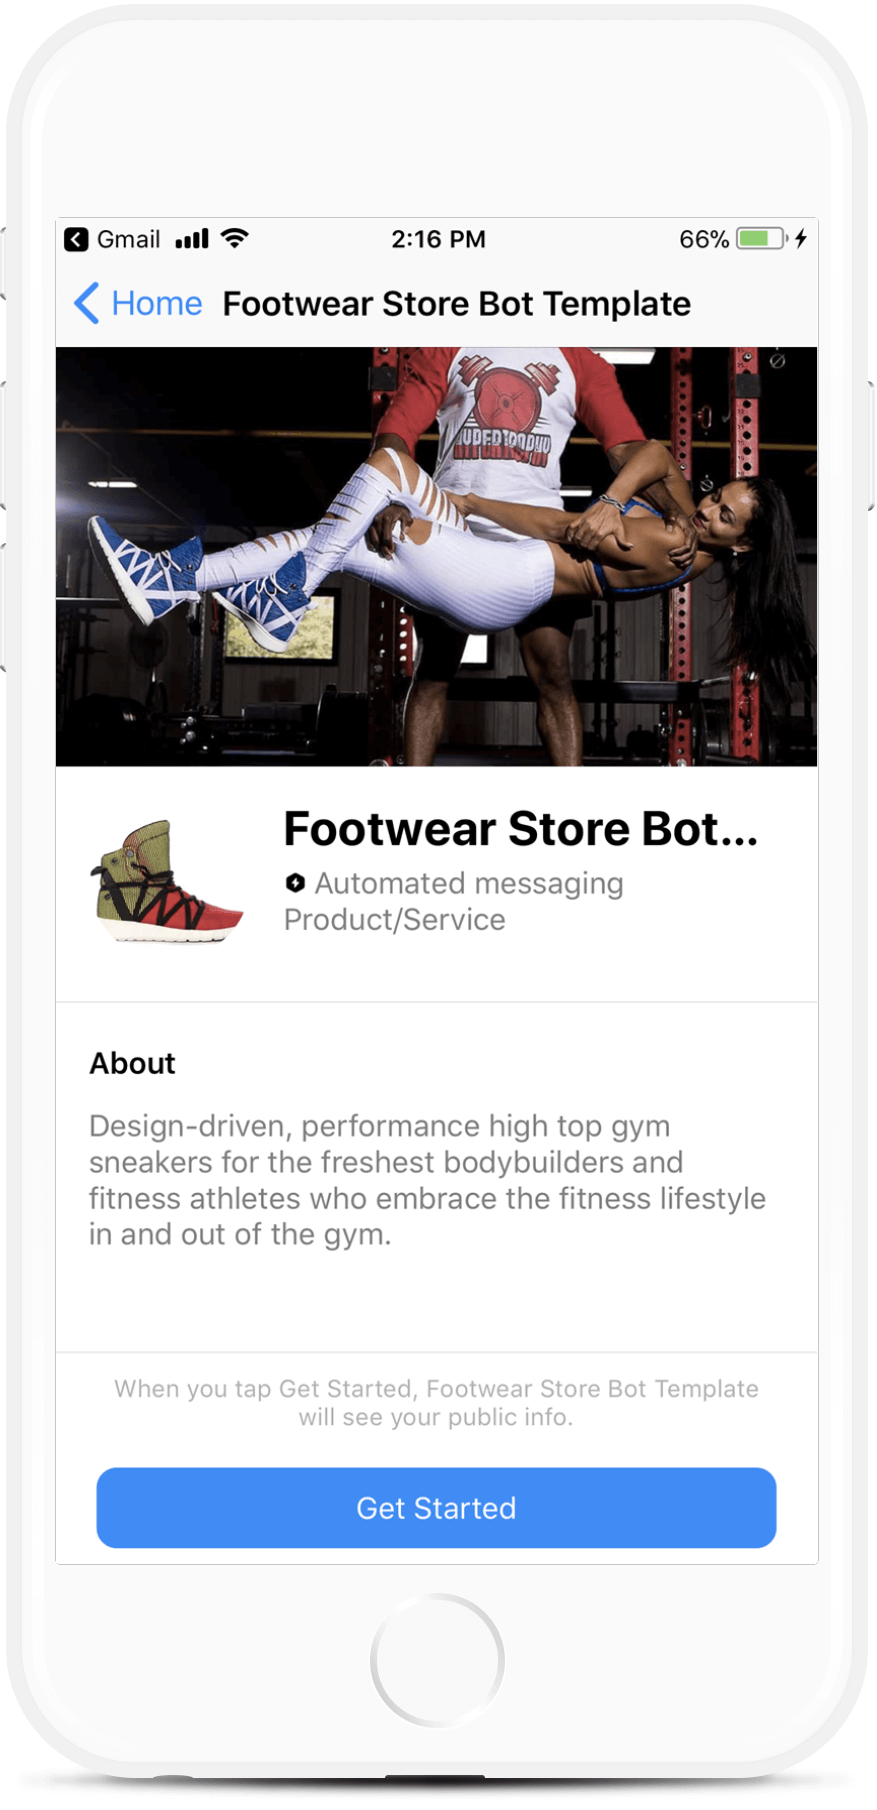 E-Commerce Messenger Bot Template for Footwear Stores